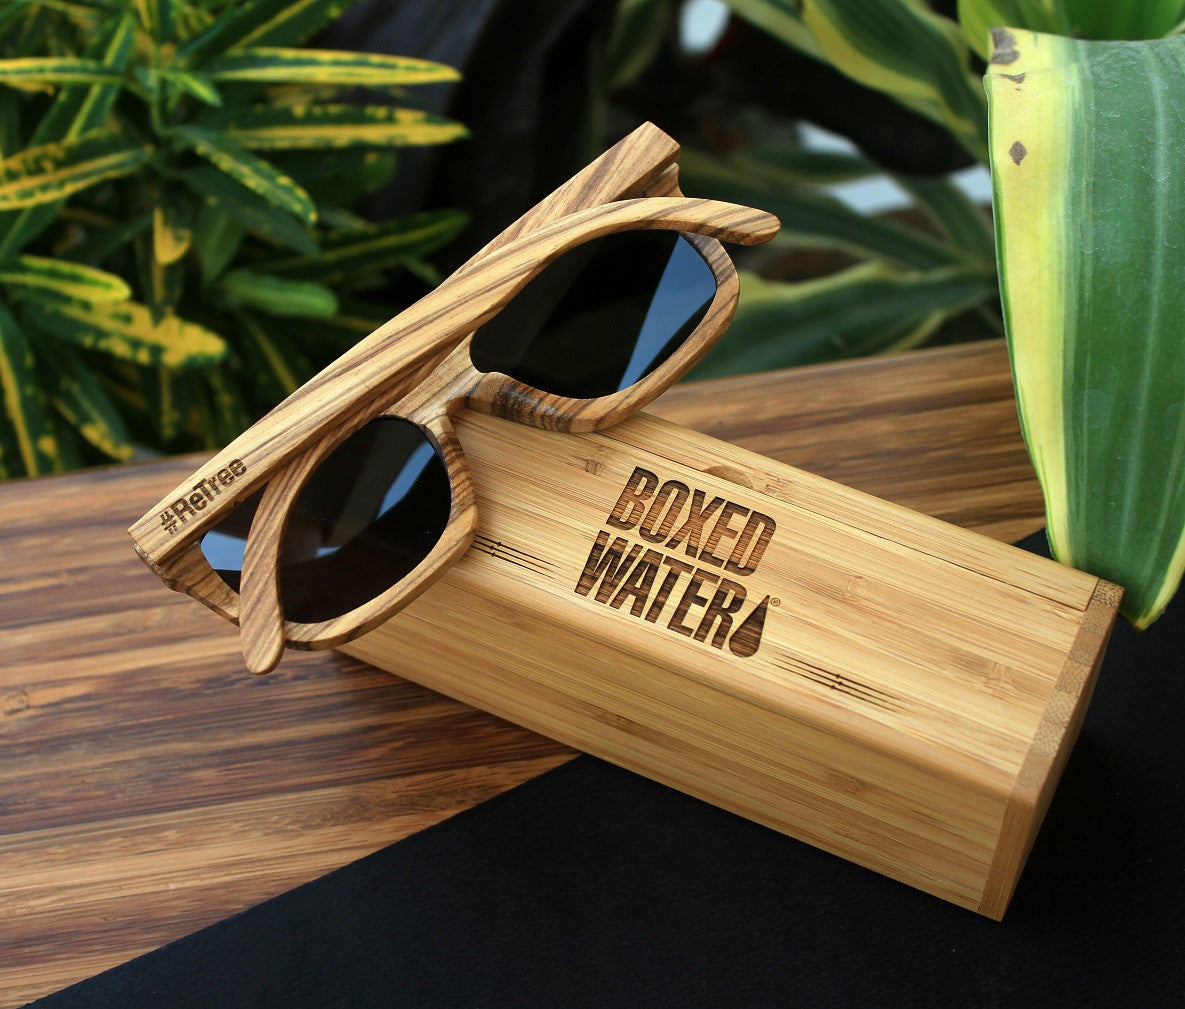 Custom Zebrawood Wooden Sunglasses for Boxed Water Is Better - Corporate Gifts - Woodgeek Store